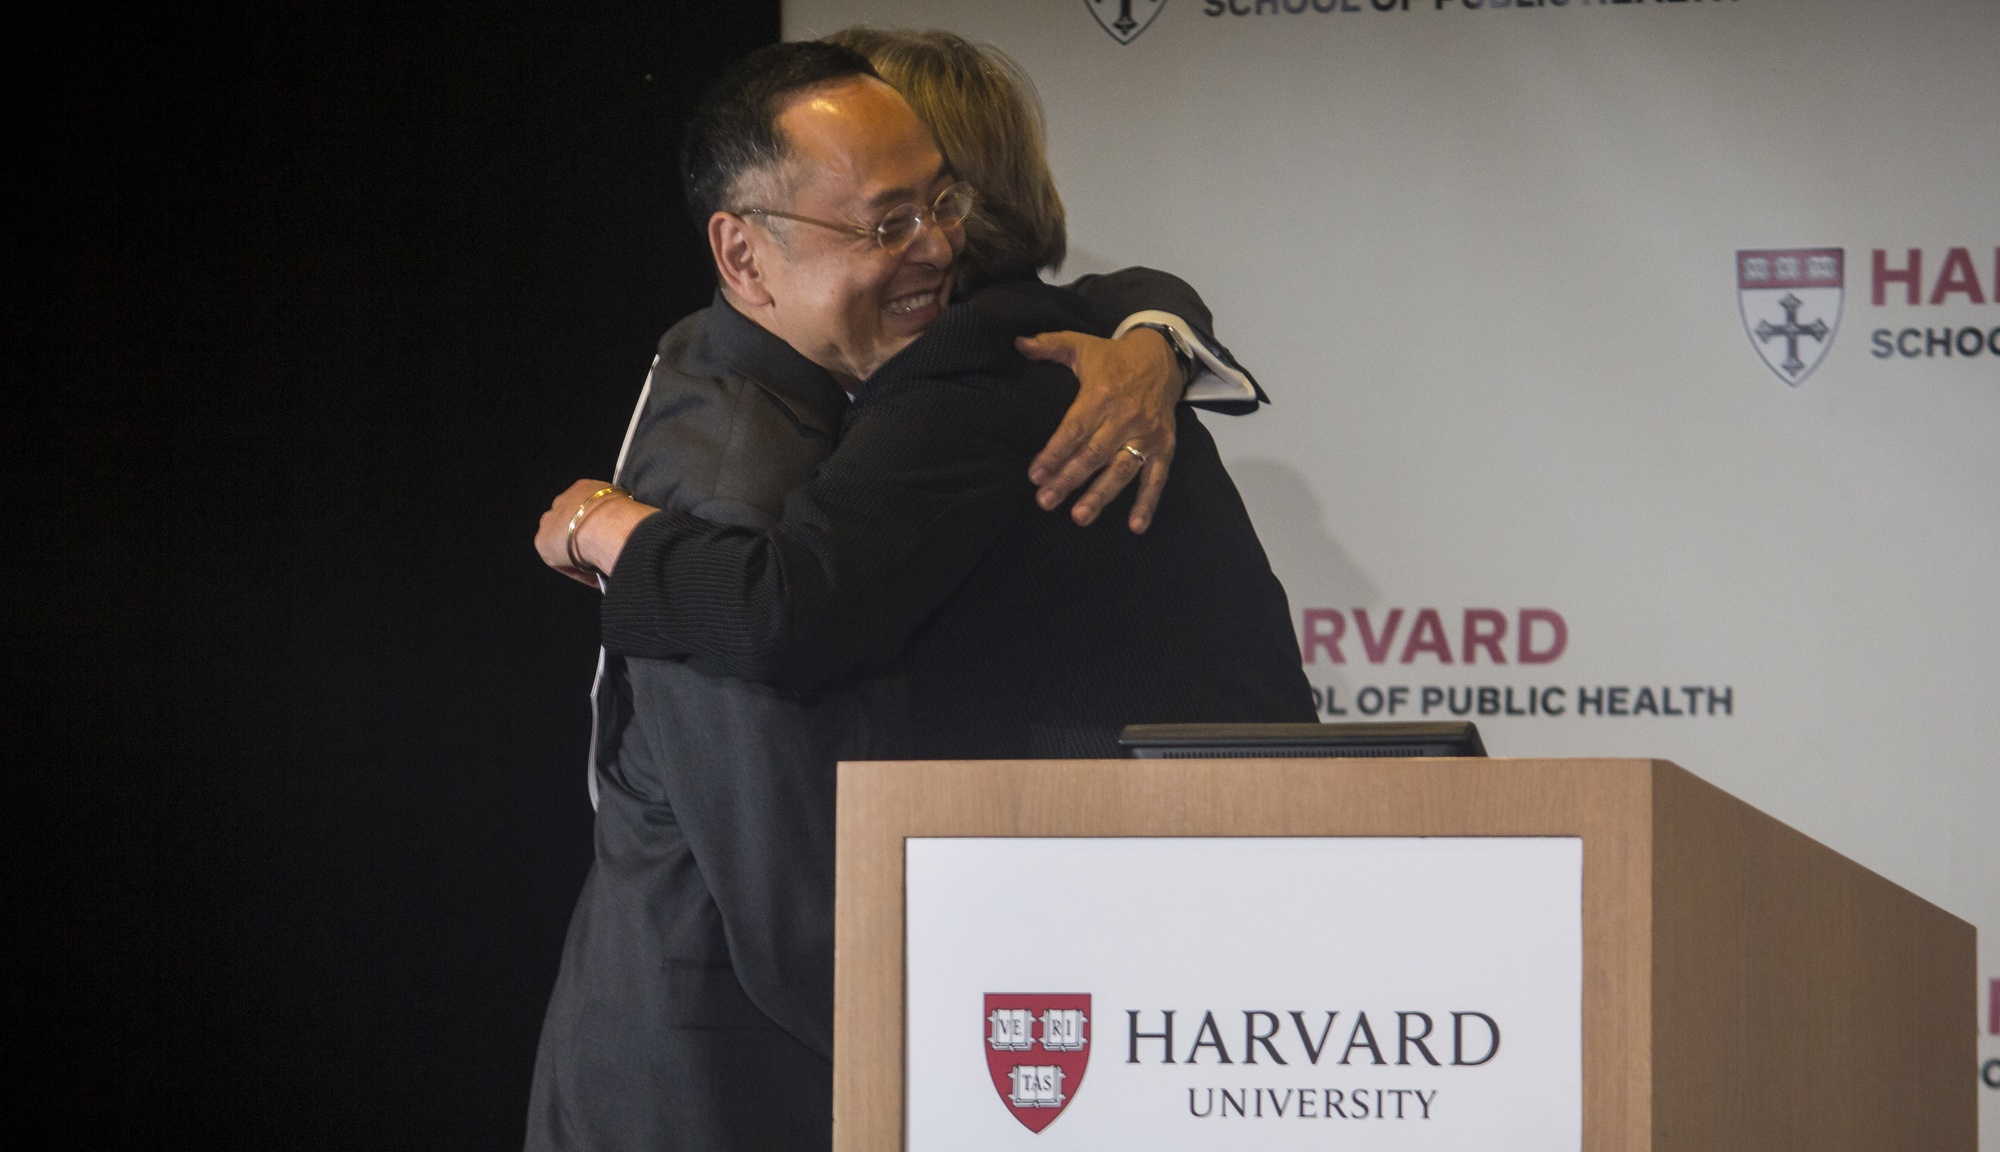 Gerald L. Chan, left, and University President Drew G. Faust embrace as Faust welcomes Chan on stage at the Harvard School of Public Health Monday afternoon for the unveiling of his foundation's $350 million gift.